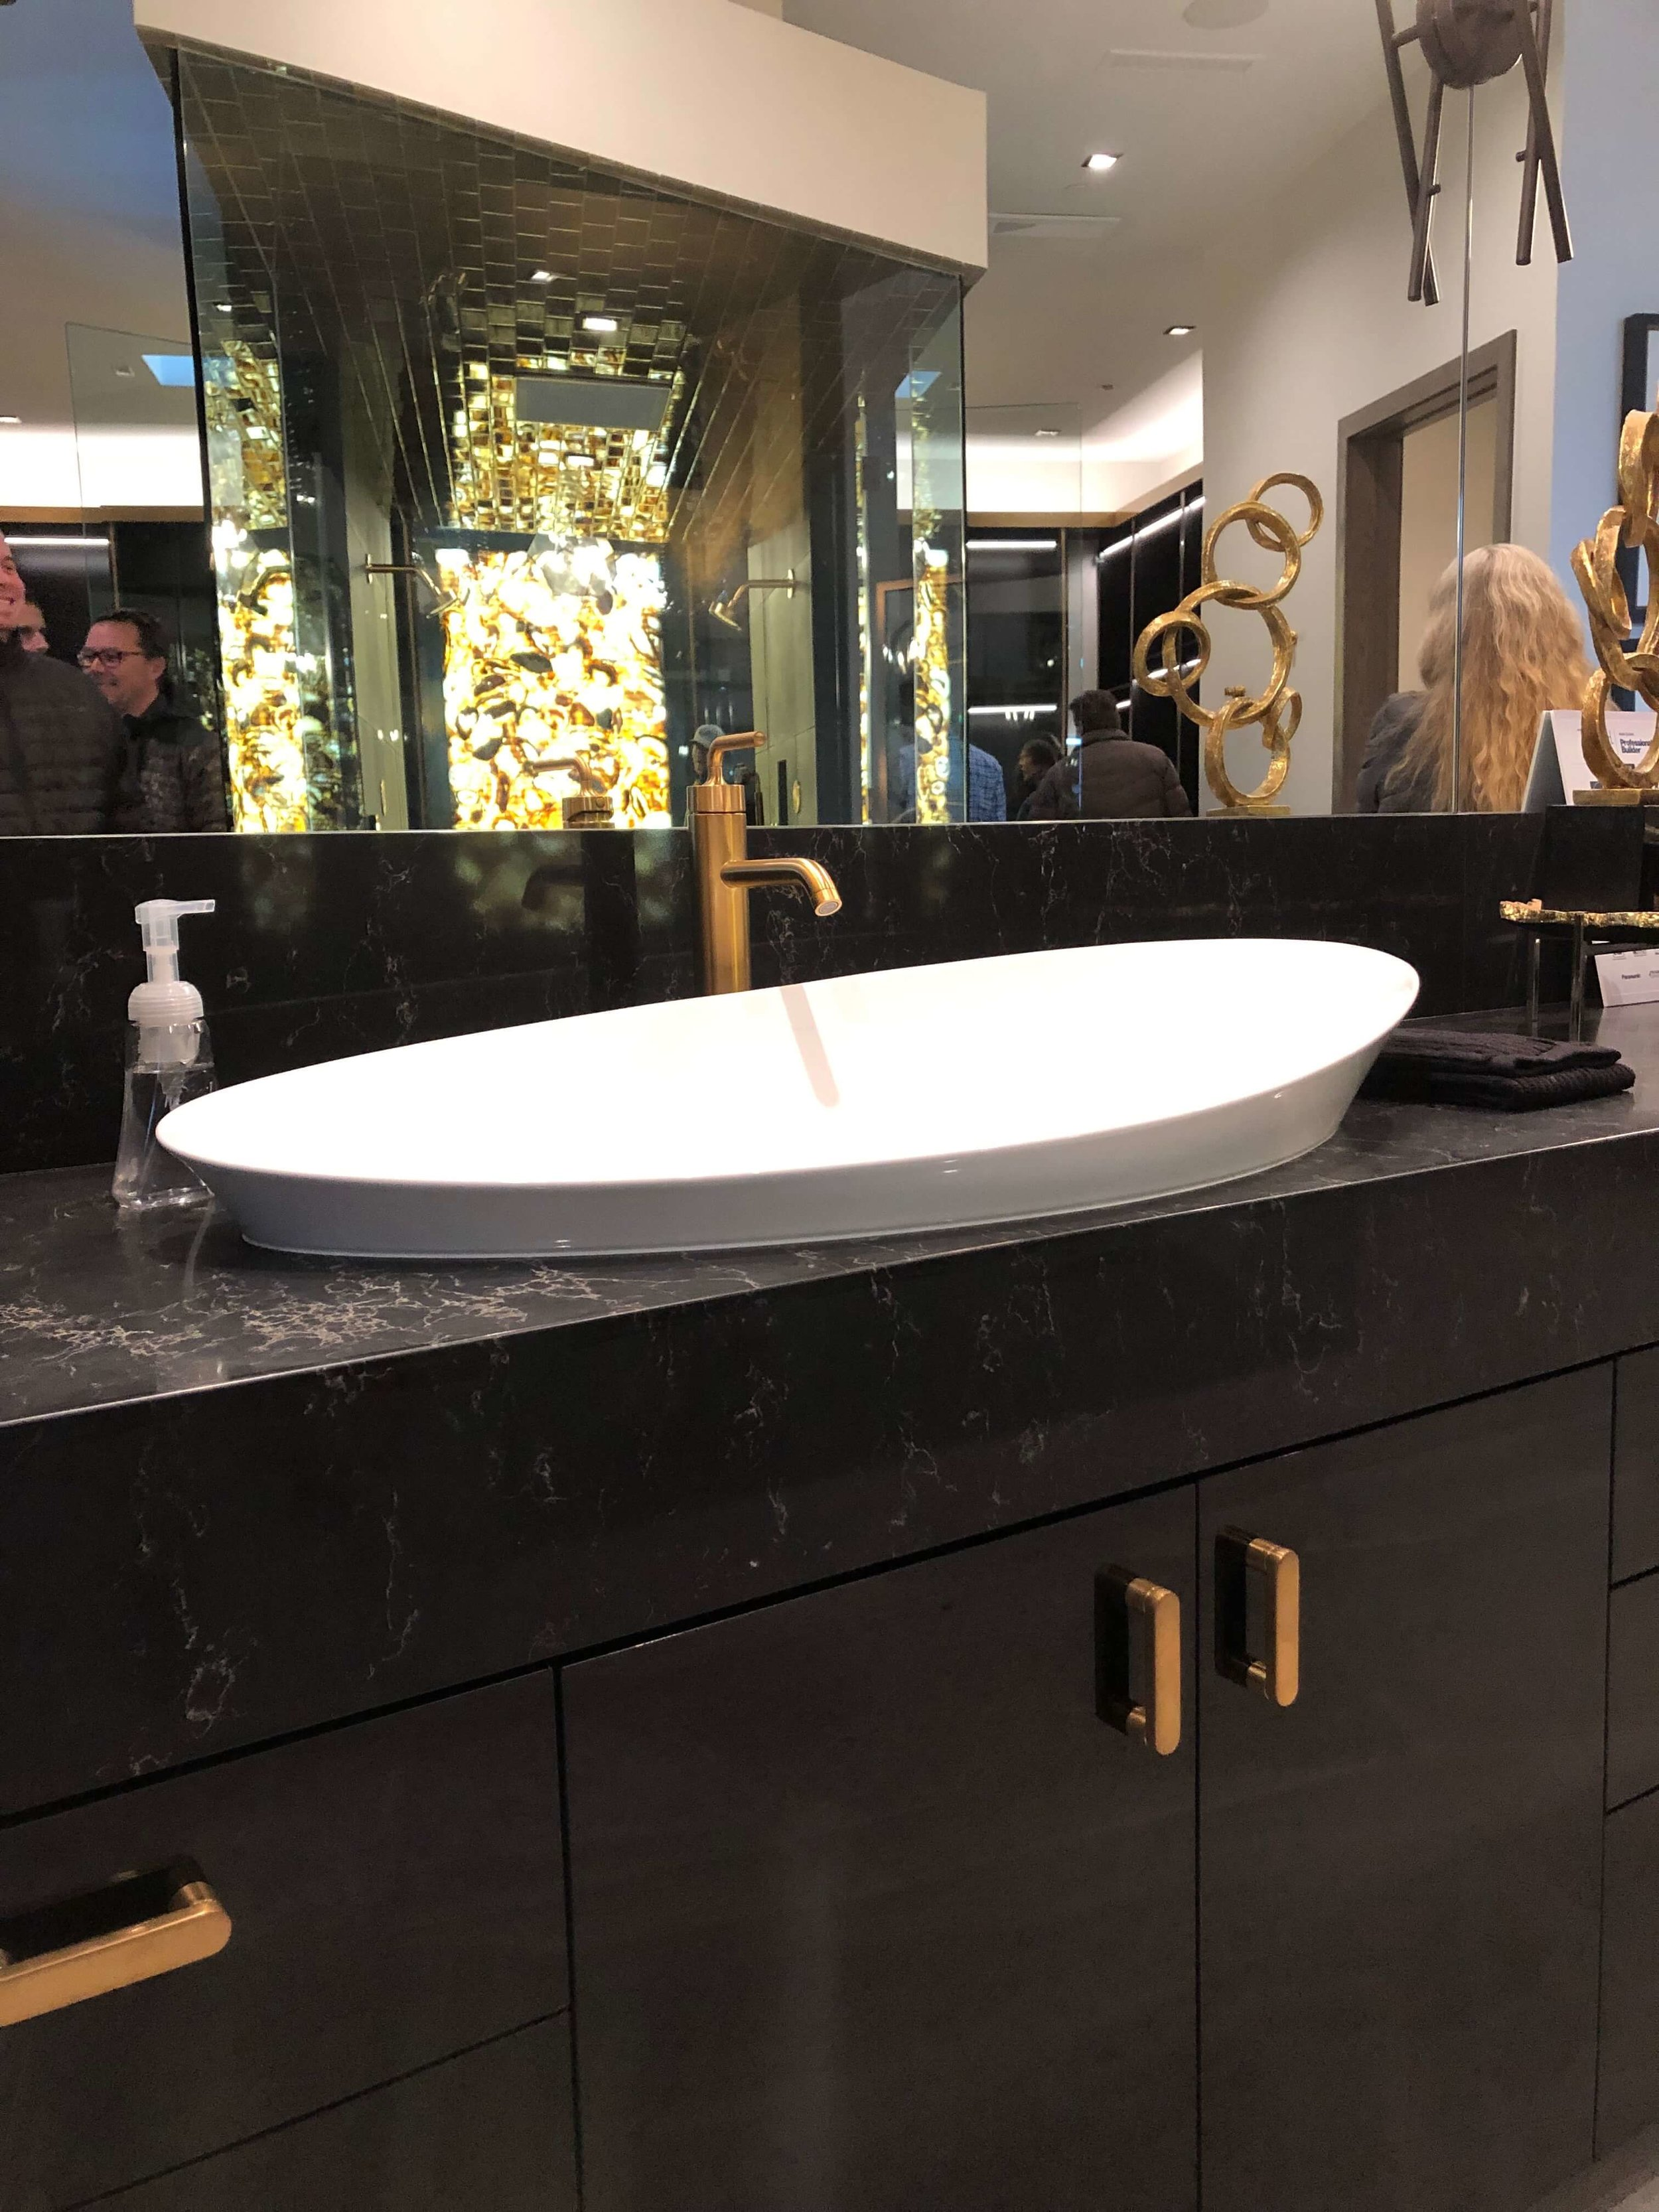 Large curved vessel sink in the master bath, The New American Home Tour 2019 | Designed and built by Sun West Custom Homes  #contemporaryhome #bathroom